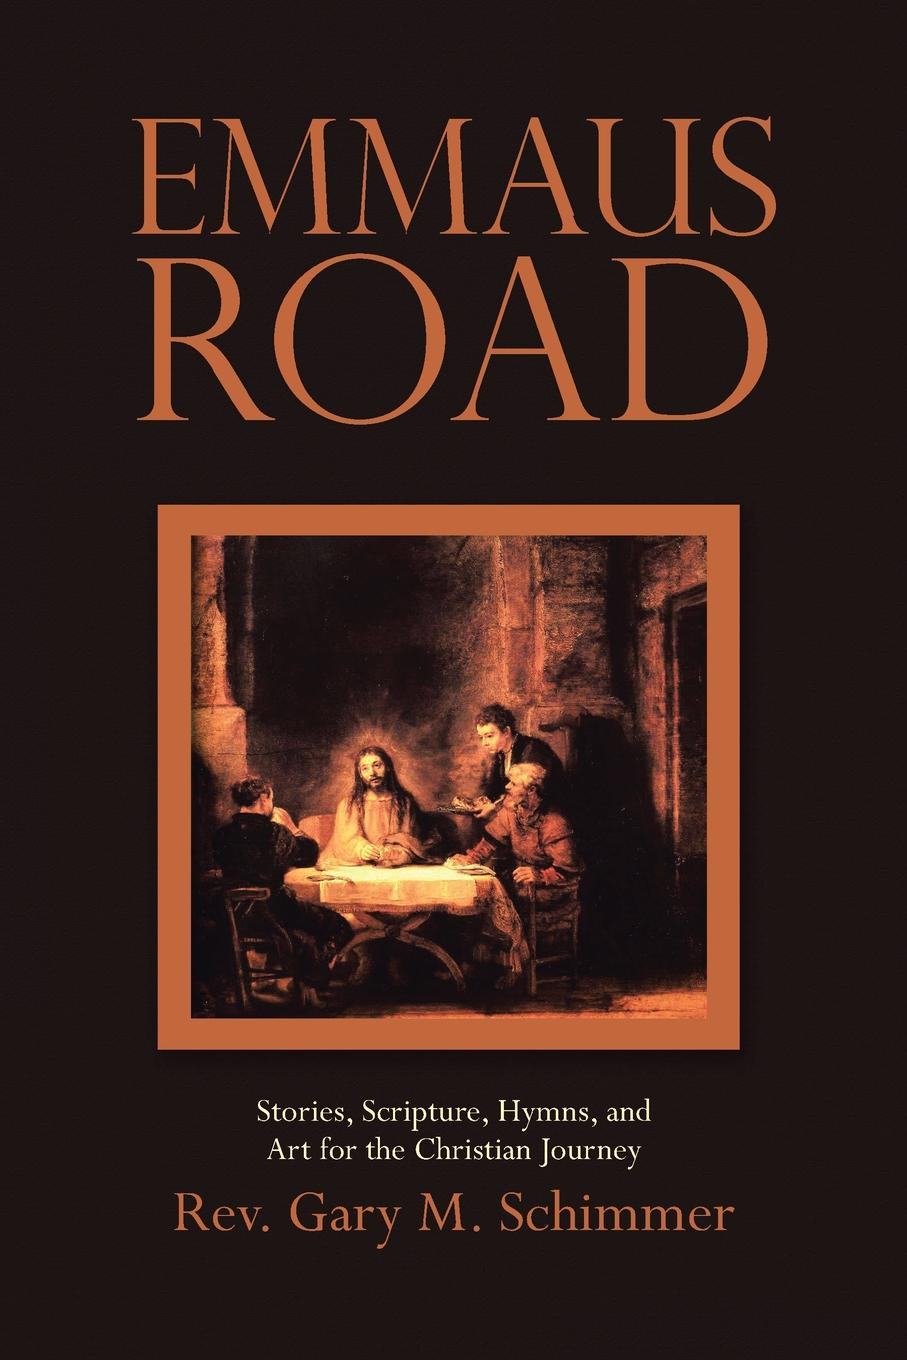 Rev. Gary M. Schimmer Emmaus Road. Stories, Scripture, Hymns, and Art for the Christian Journey joe l lewis essence of the christian journey faith hope and love these three